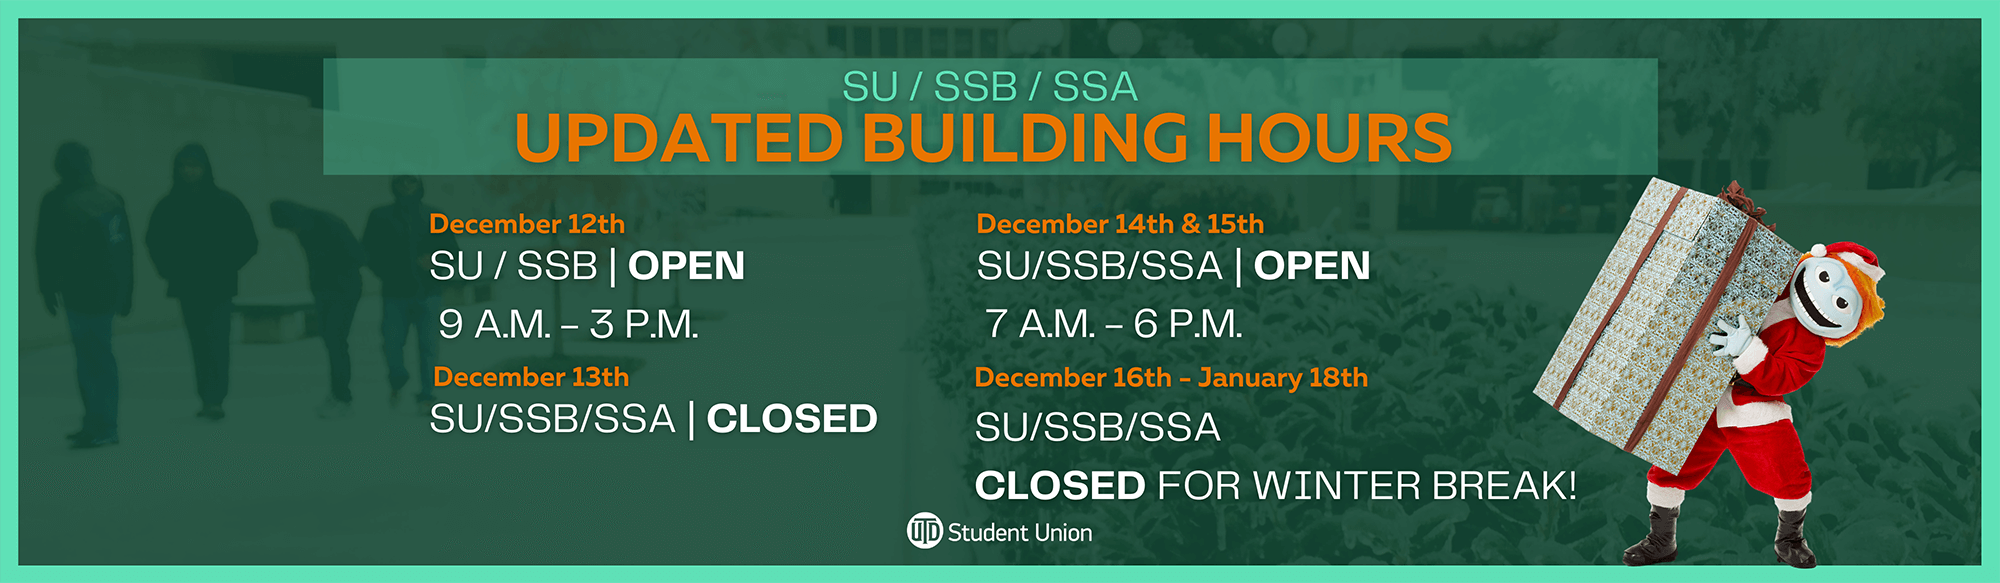 Building Hours Dec. 12 - Jan. 18